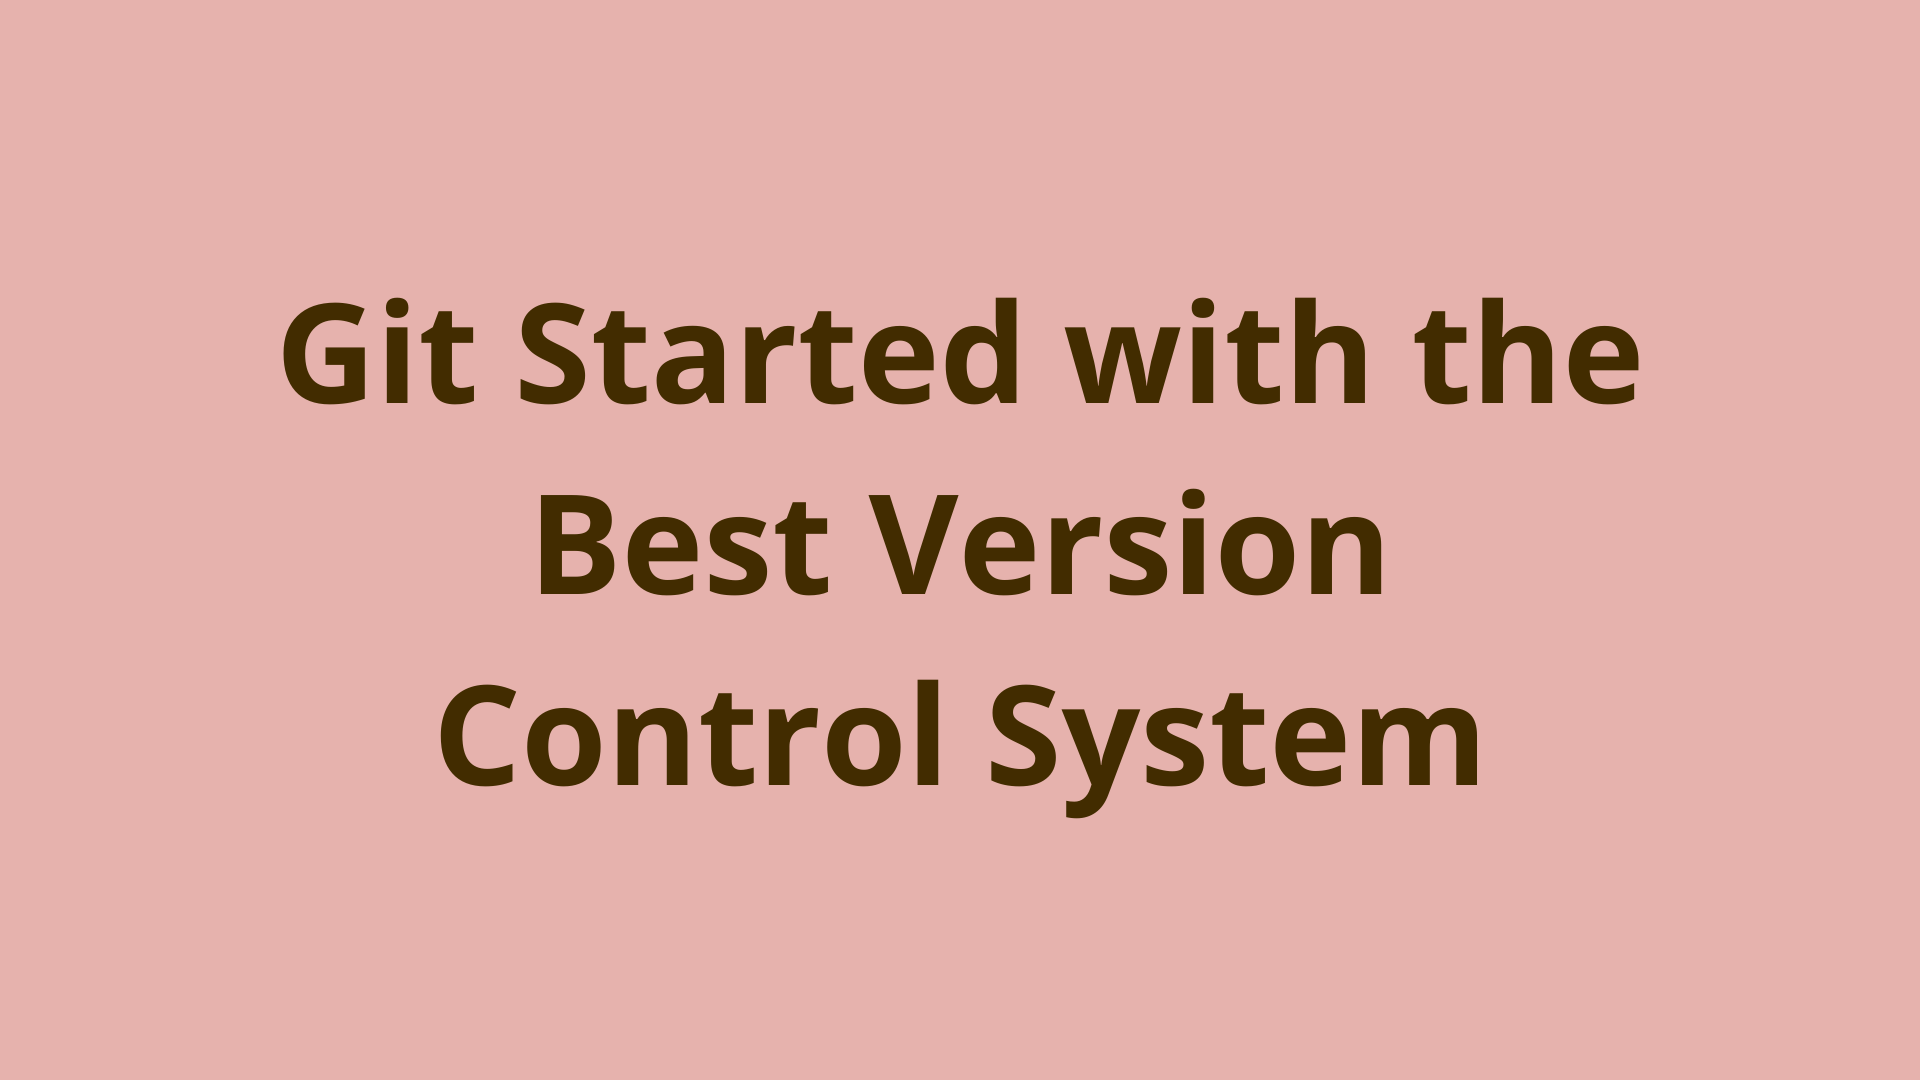 Image of Git started with the best version control system